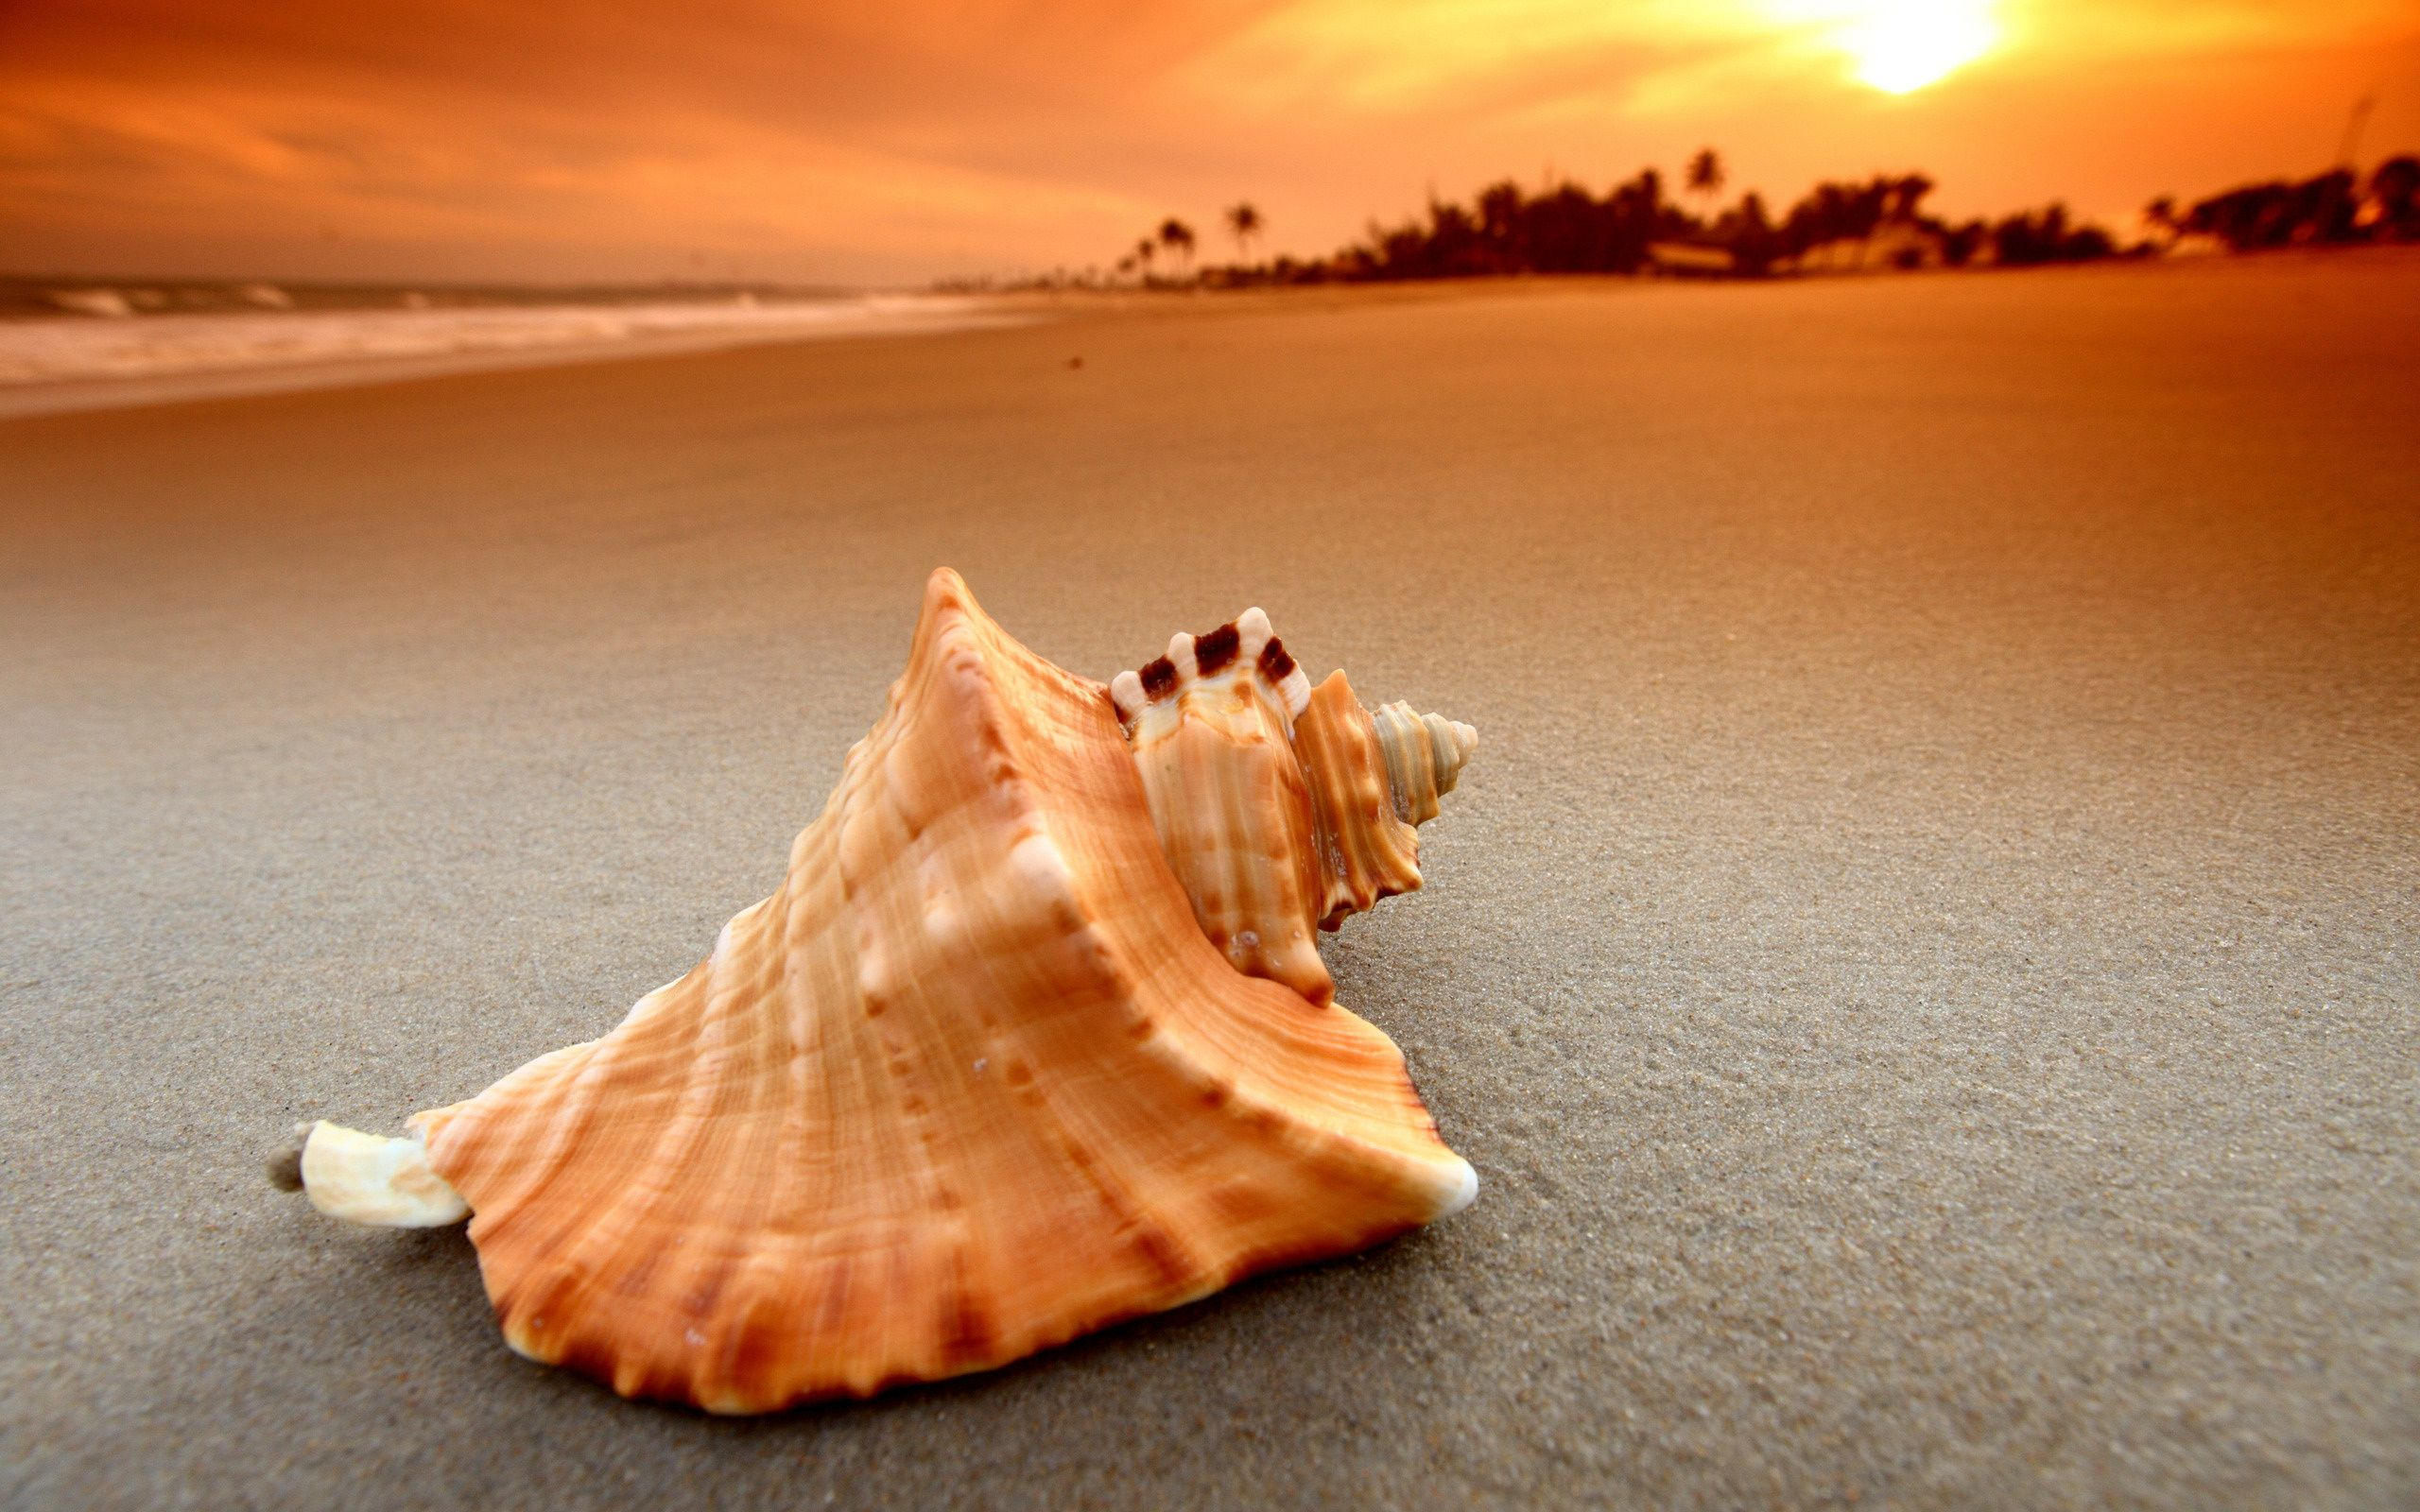 Ocean Sand Shells wallpaper Ocean Sand